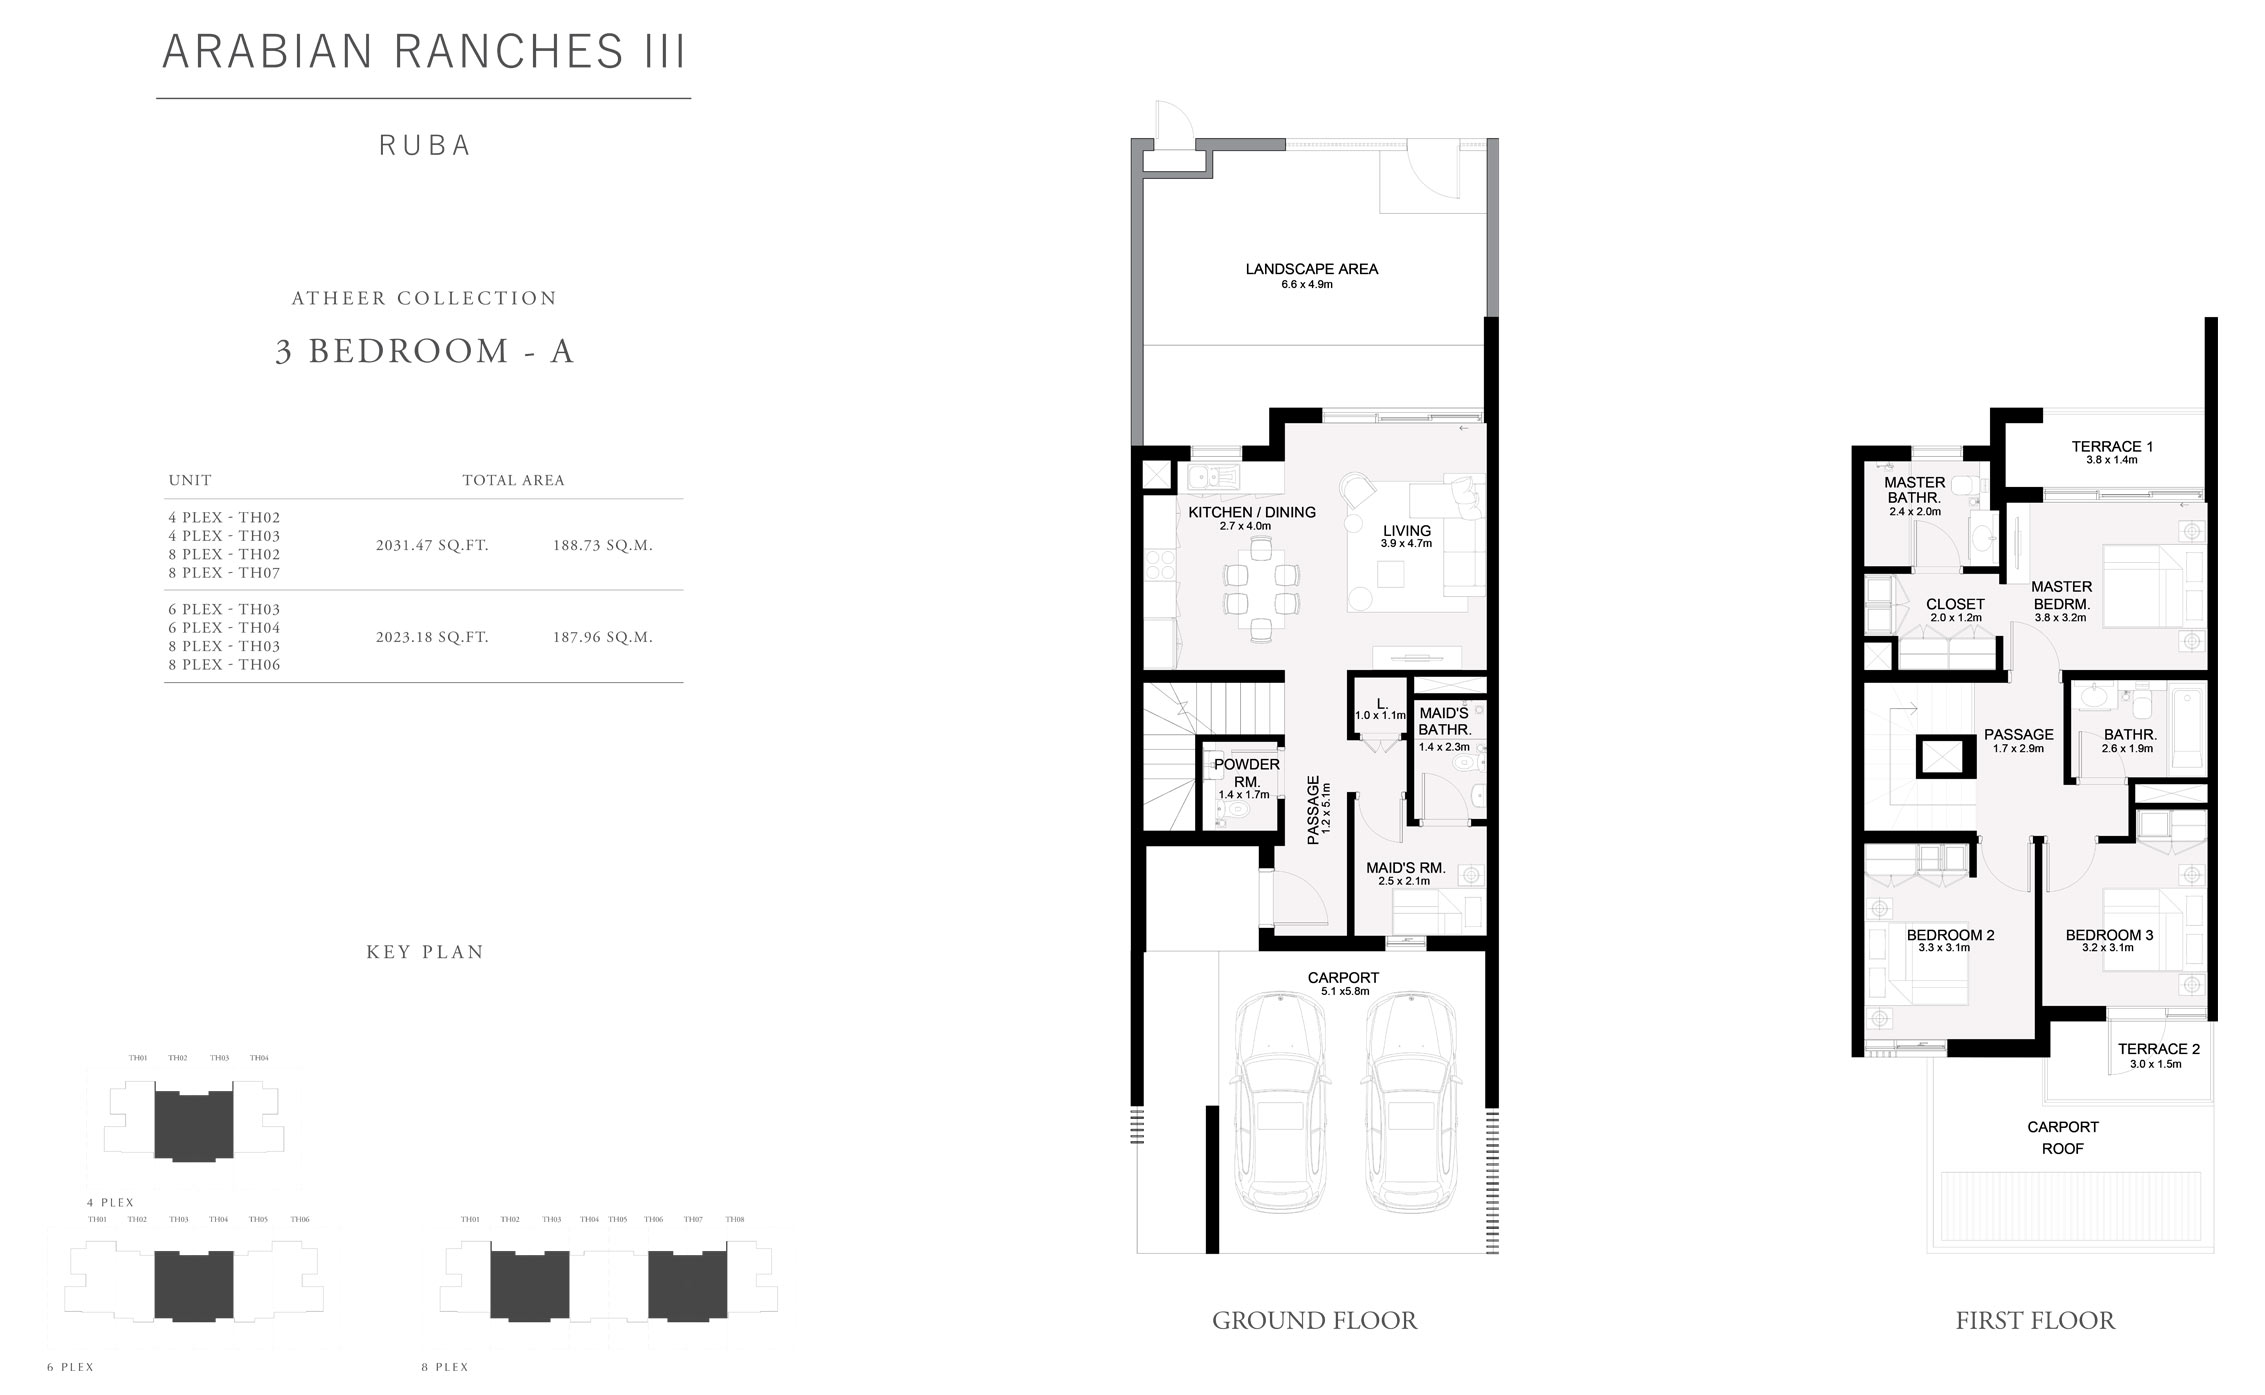 Atheer Collection 3 Bedroom A, Size 2023 Sq Ft